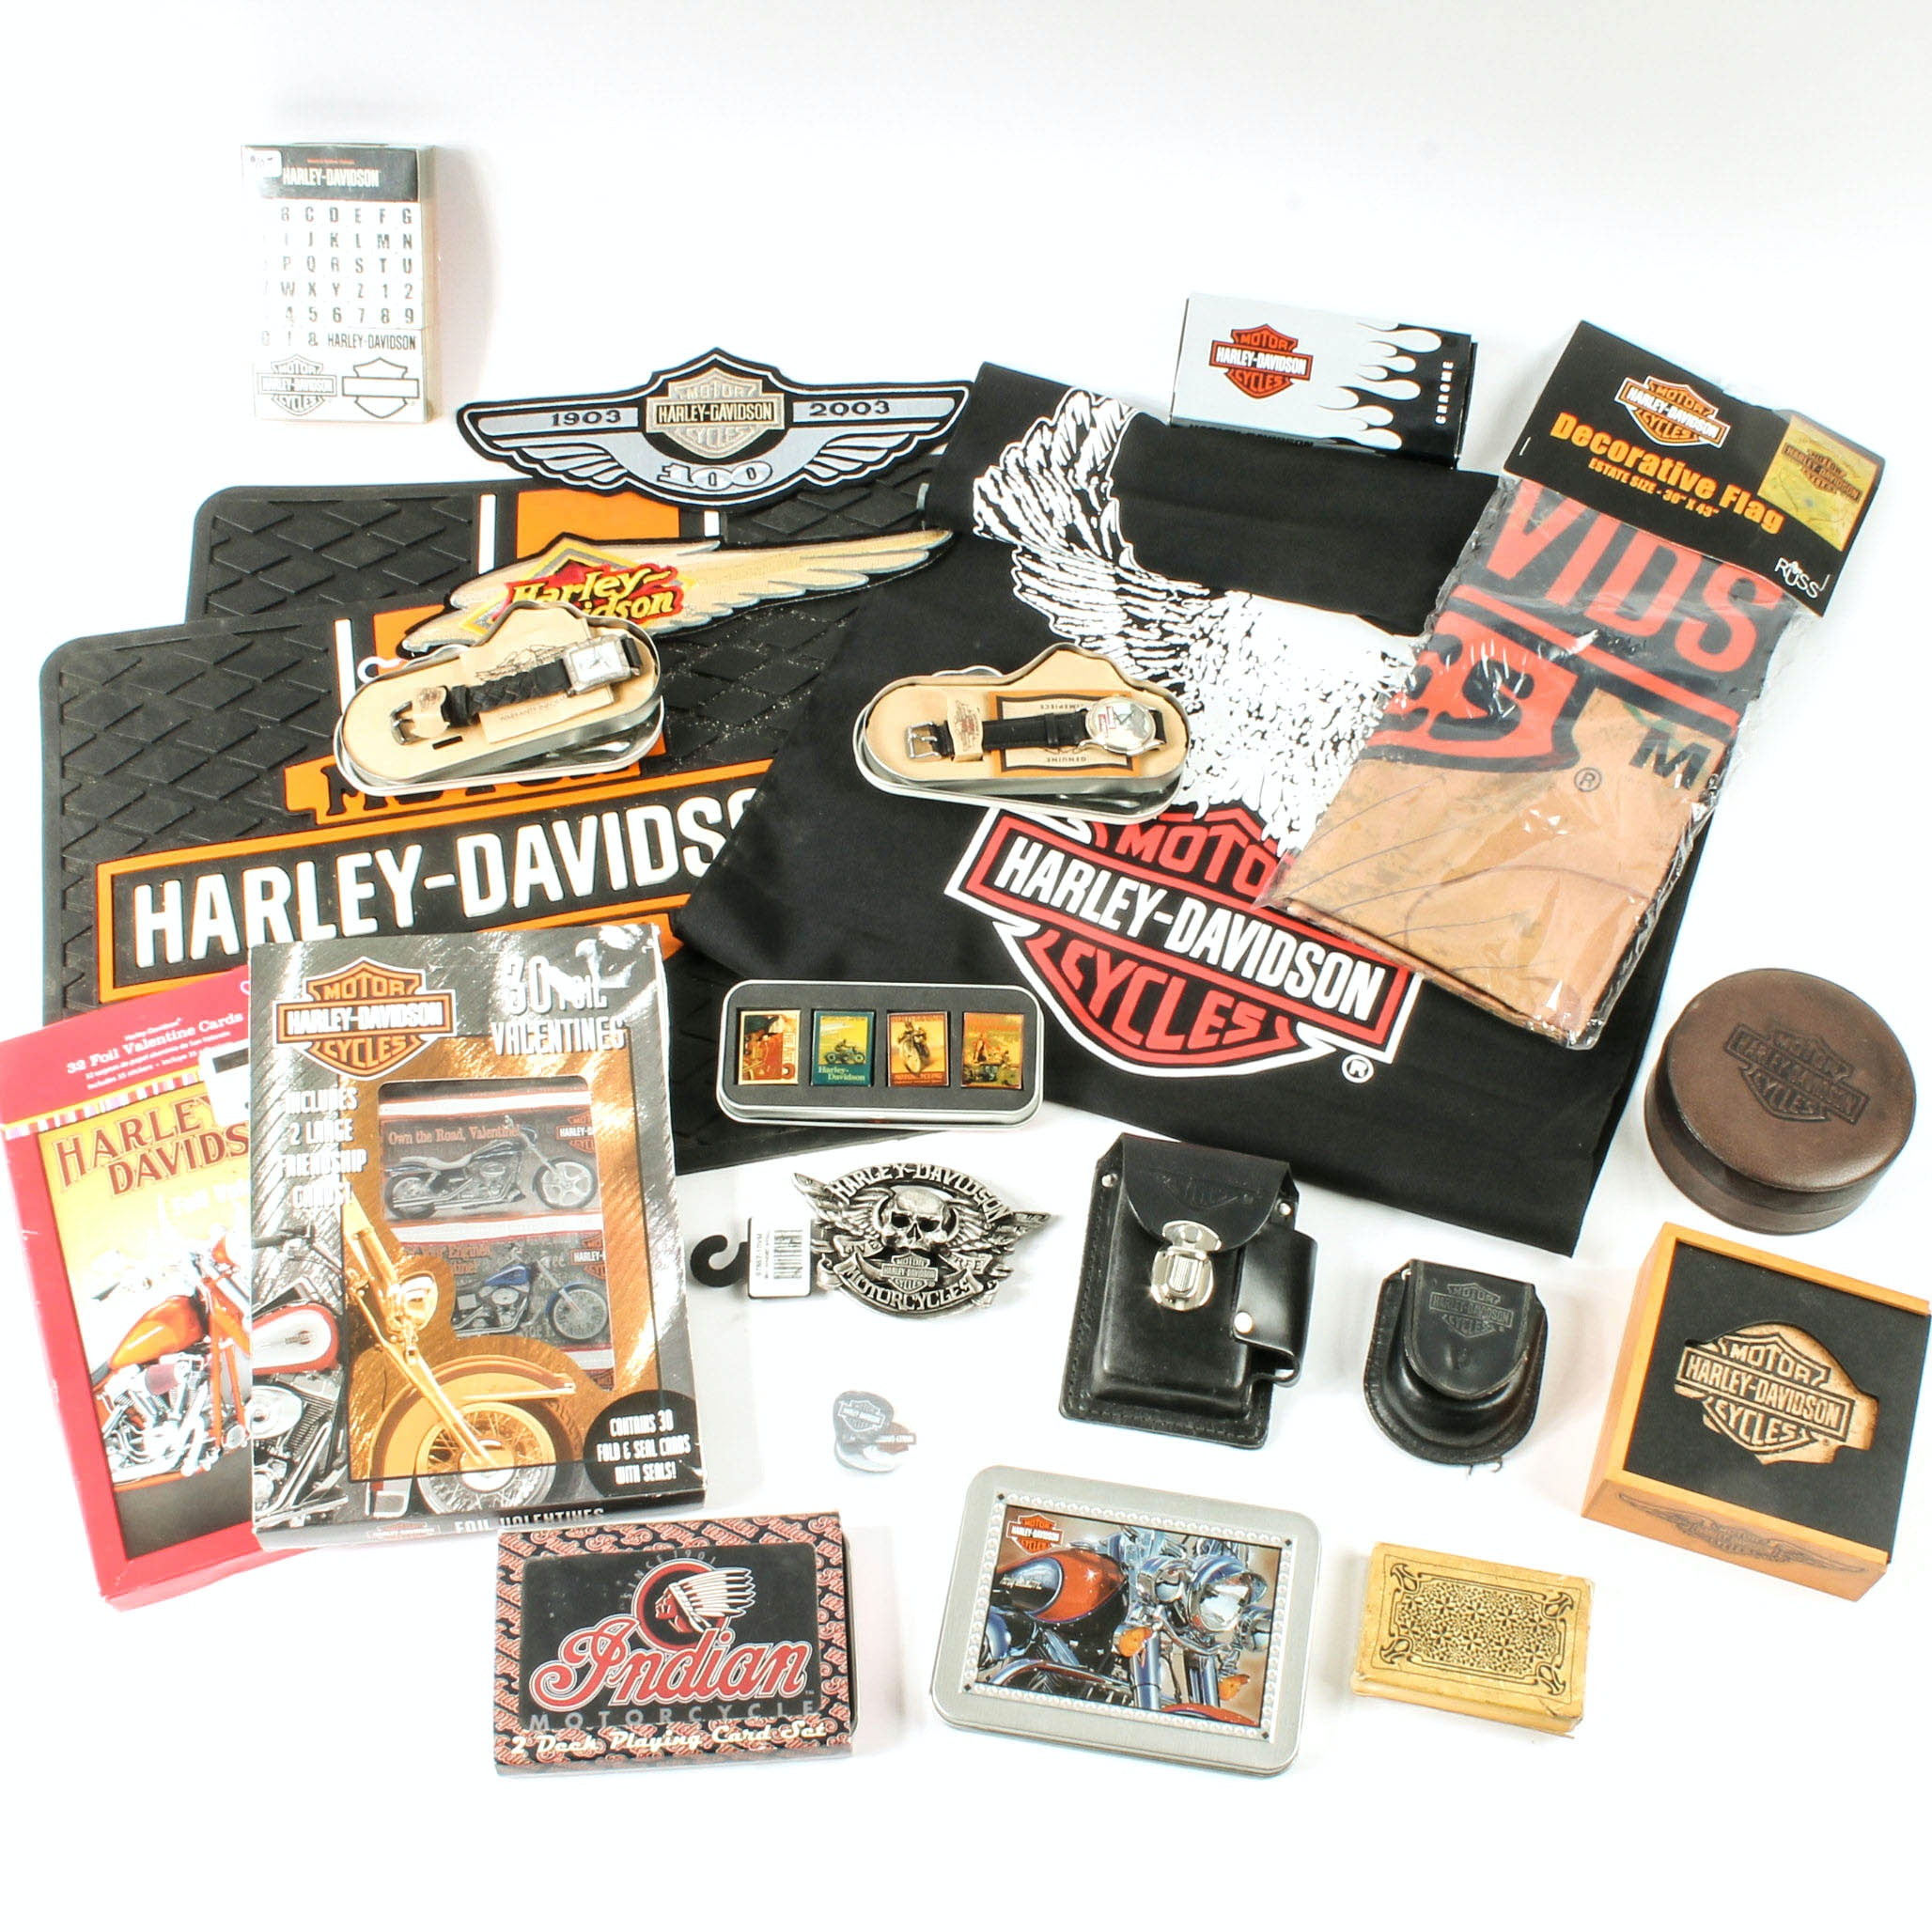 Harley-Davidson Branded Collectibles and Accessories